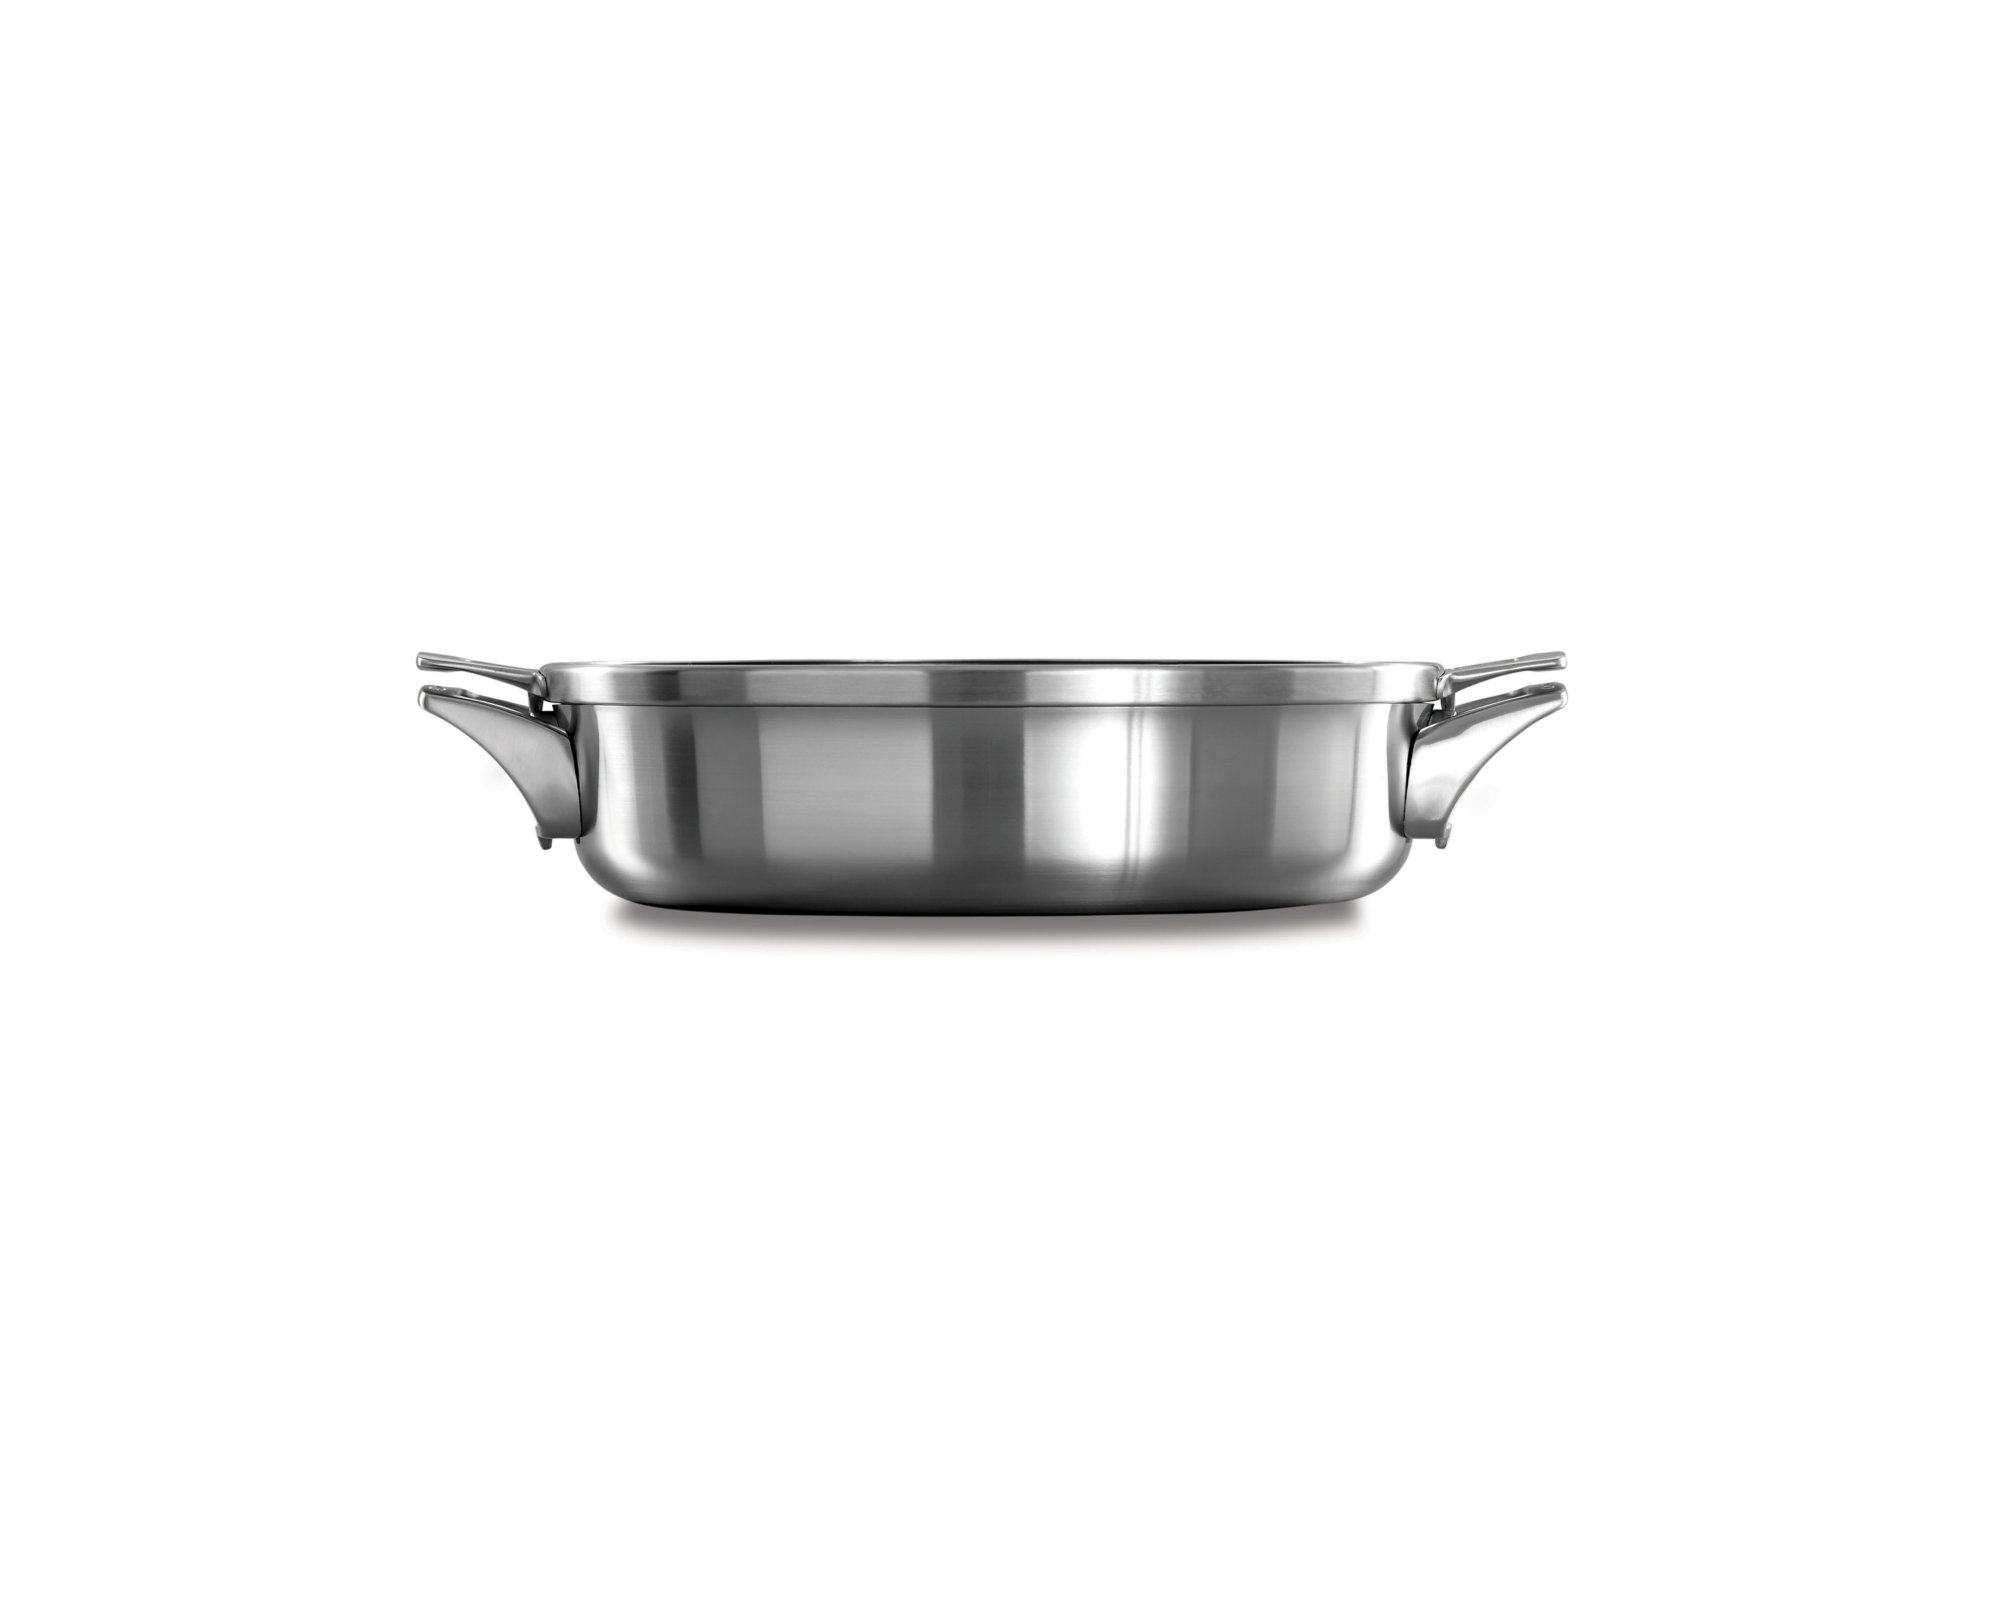 Calphalon Premier™ Space Saving Stainless Steel 5 qt. Sauteuse with Cover